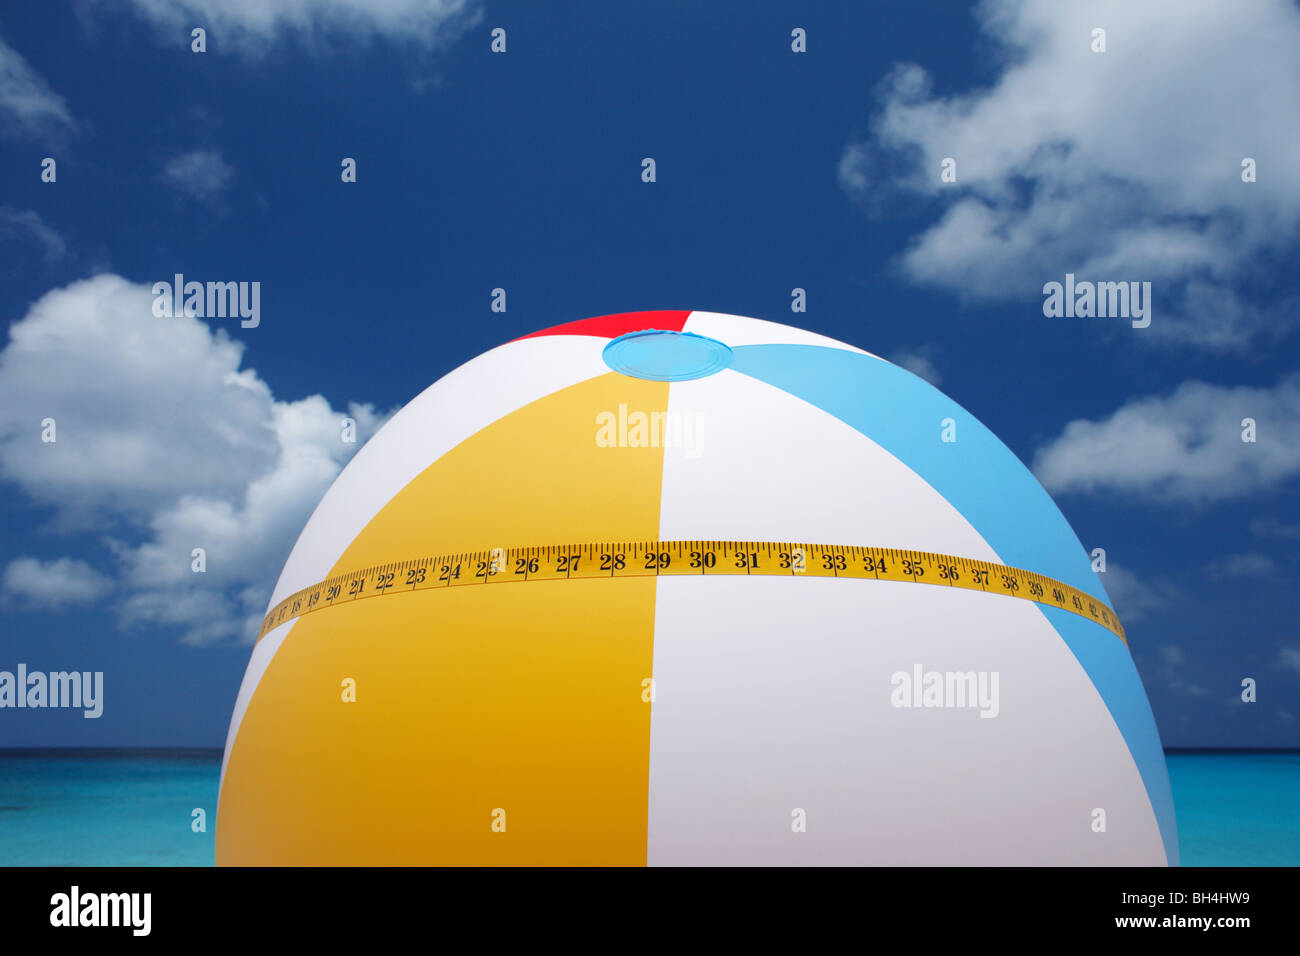 A tape measure wrapped around a brightly colored inflatable beach ball against a tropical blue sea and sky - Stock Image